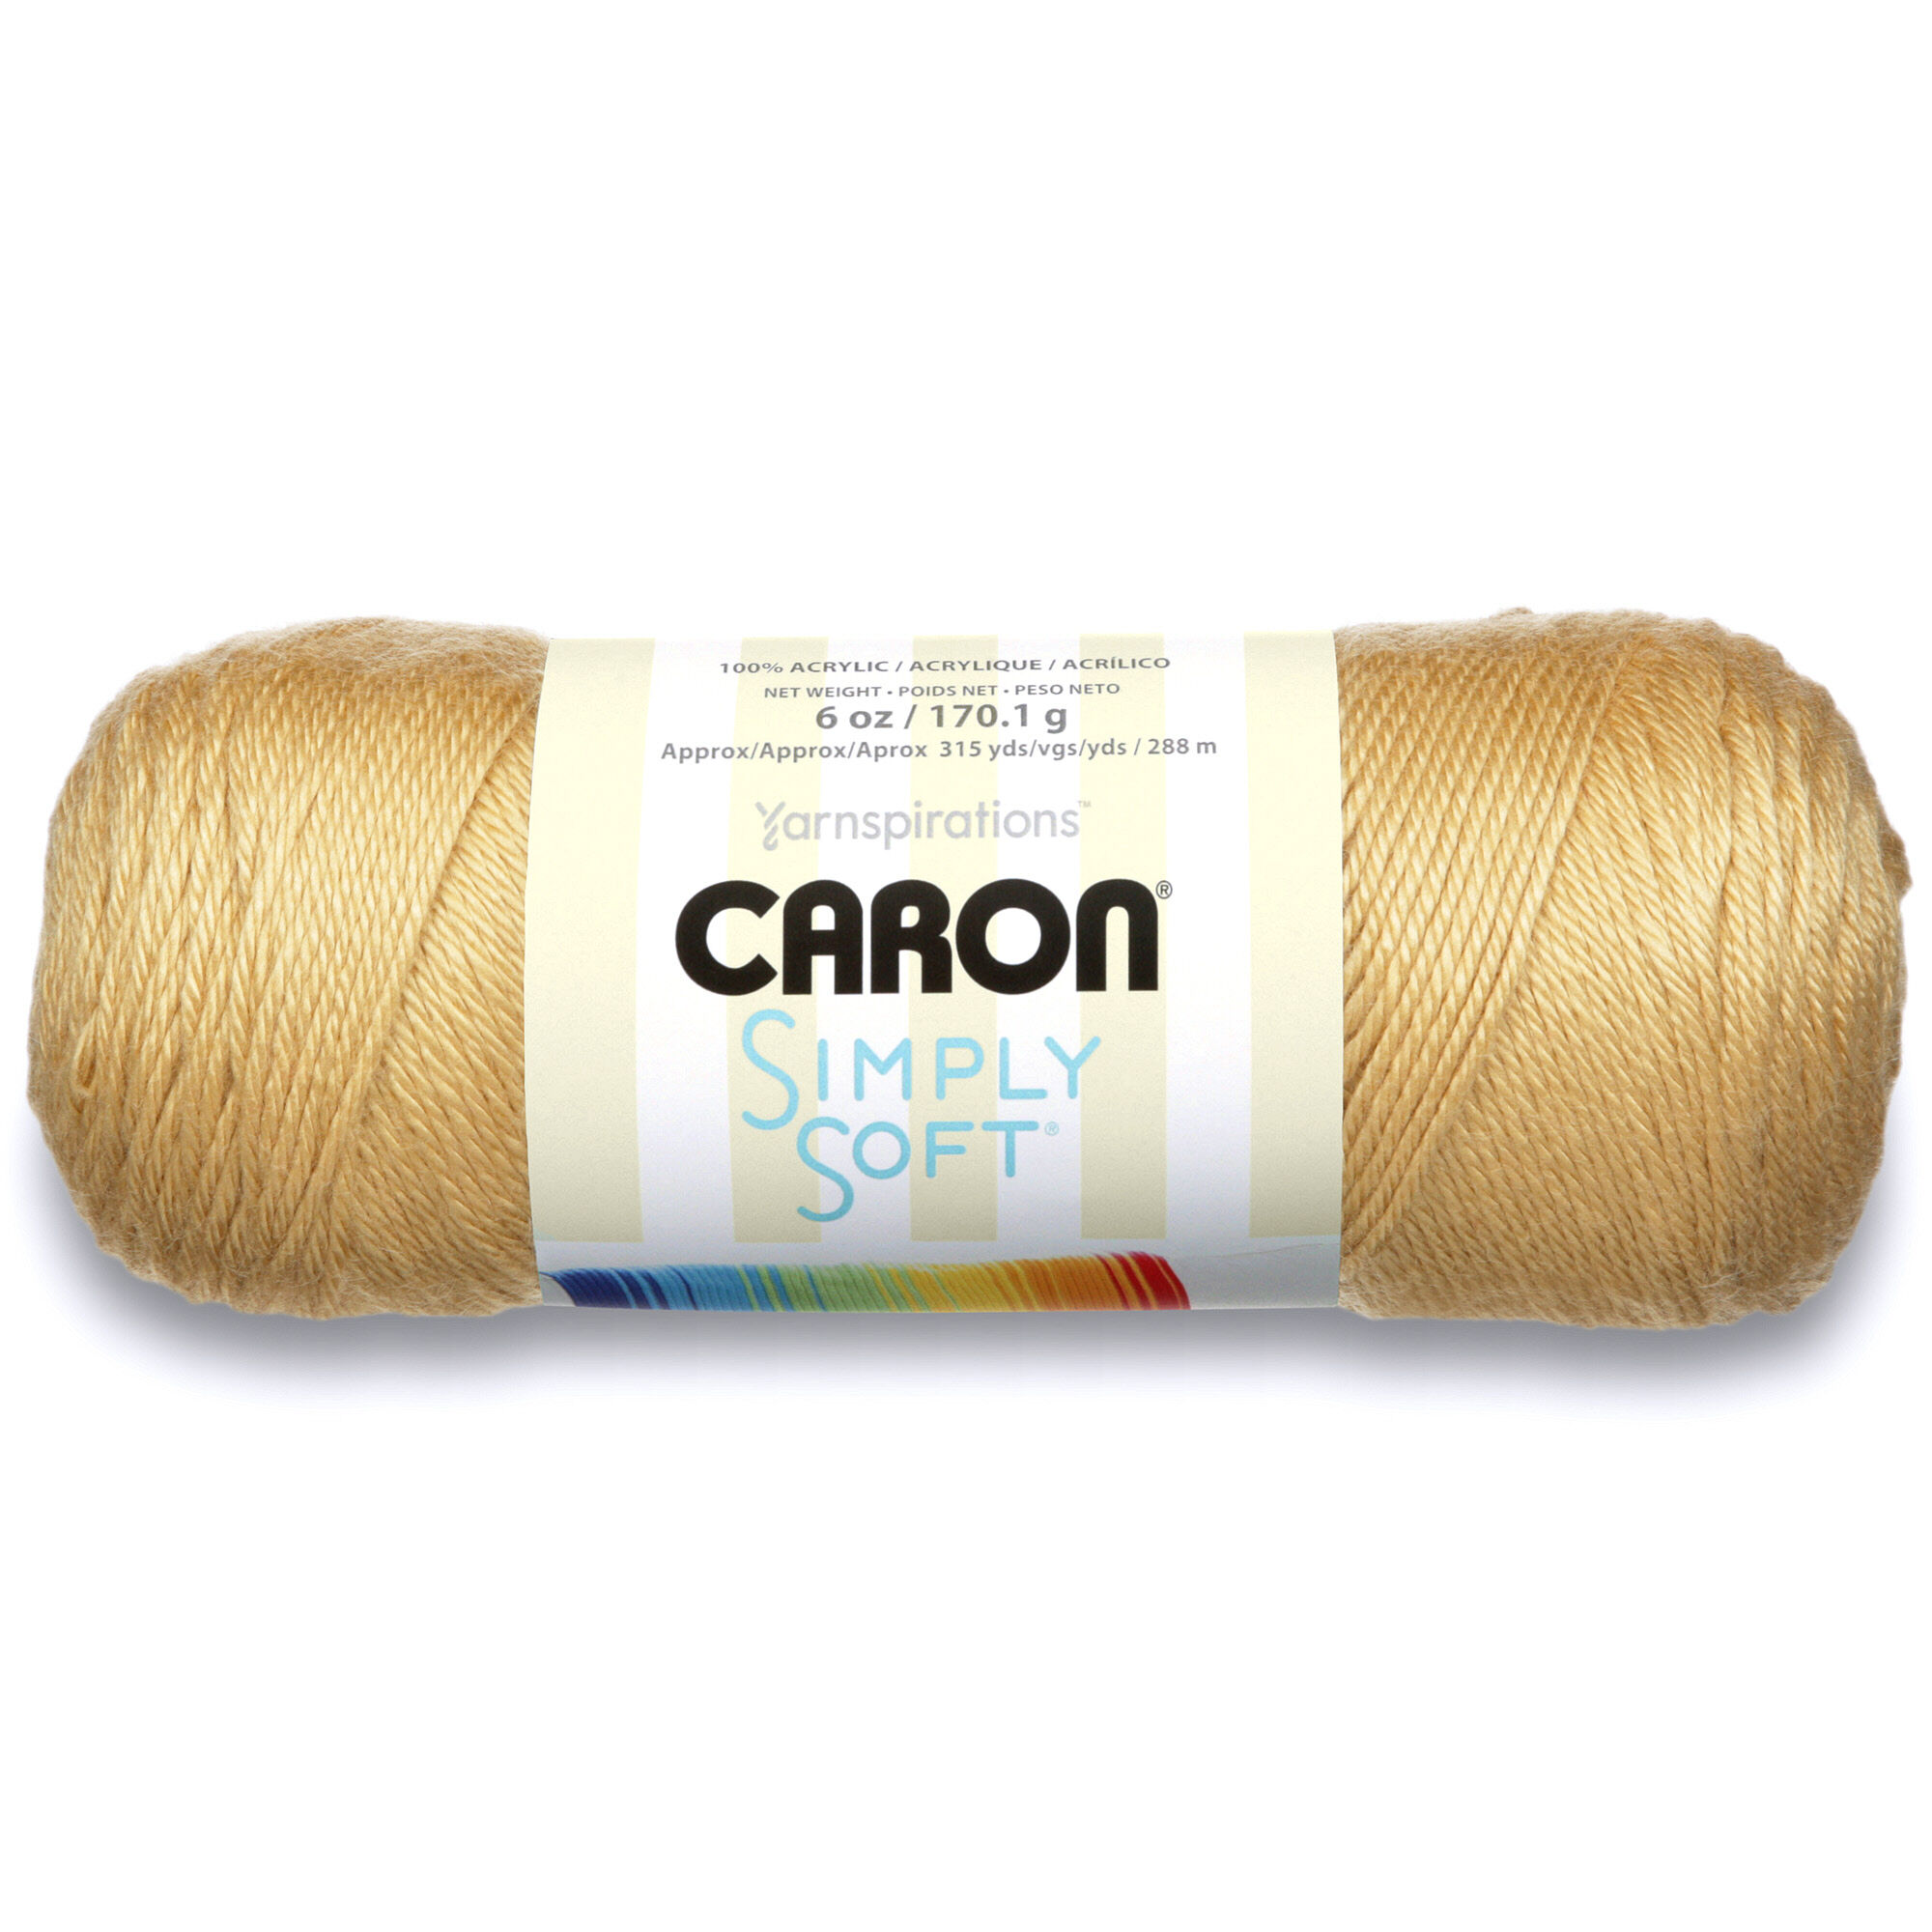 Caron Simply Soft Collection Yarn, Autumn Maize